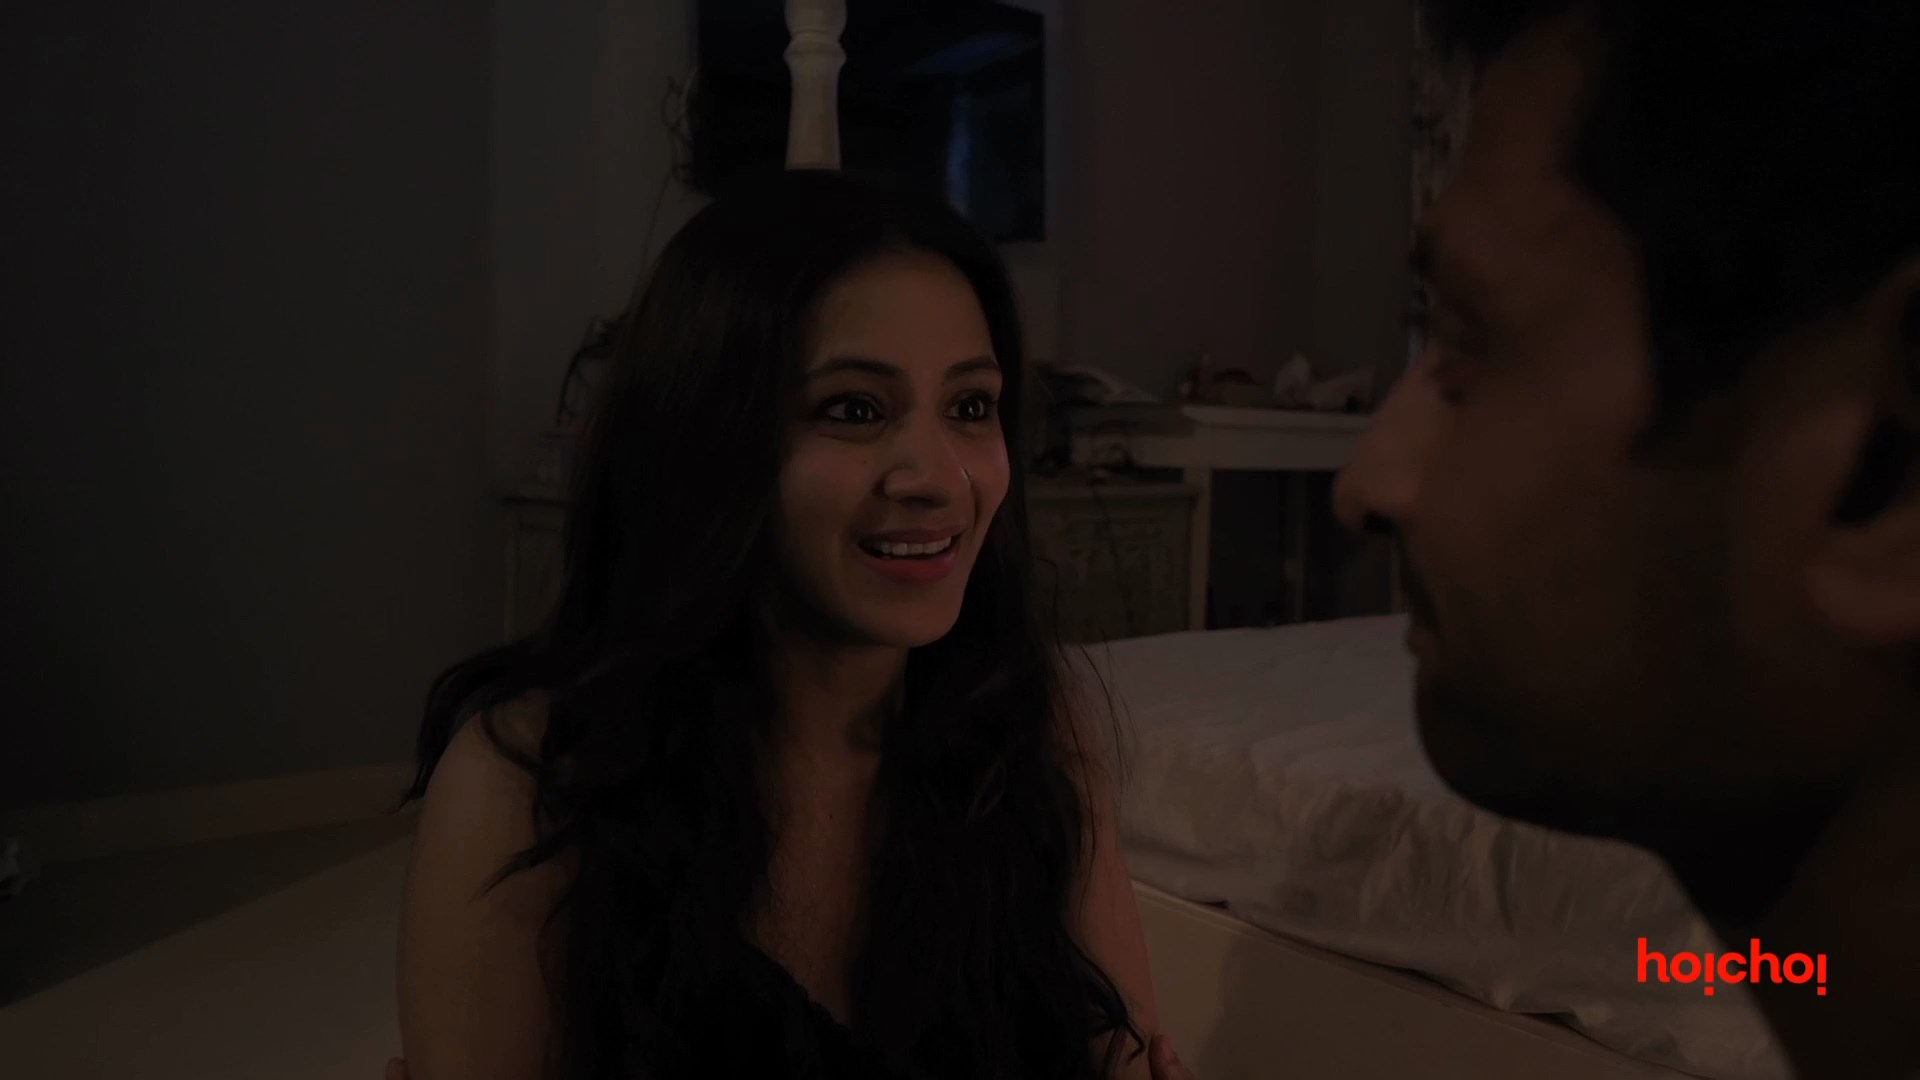 laas01 6 - 18+ Love And Affairs 2020 S01 Bengali Hoichoi Originals Web Series 480p HDRip 300MB x264 AAC